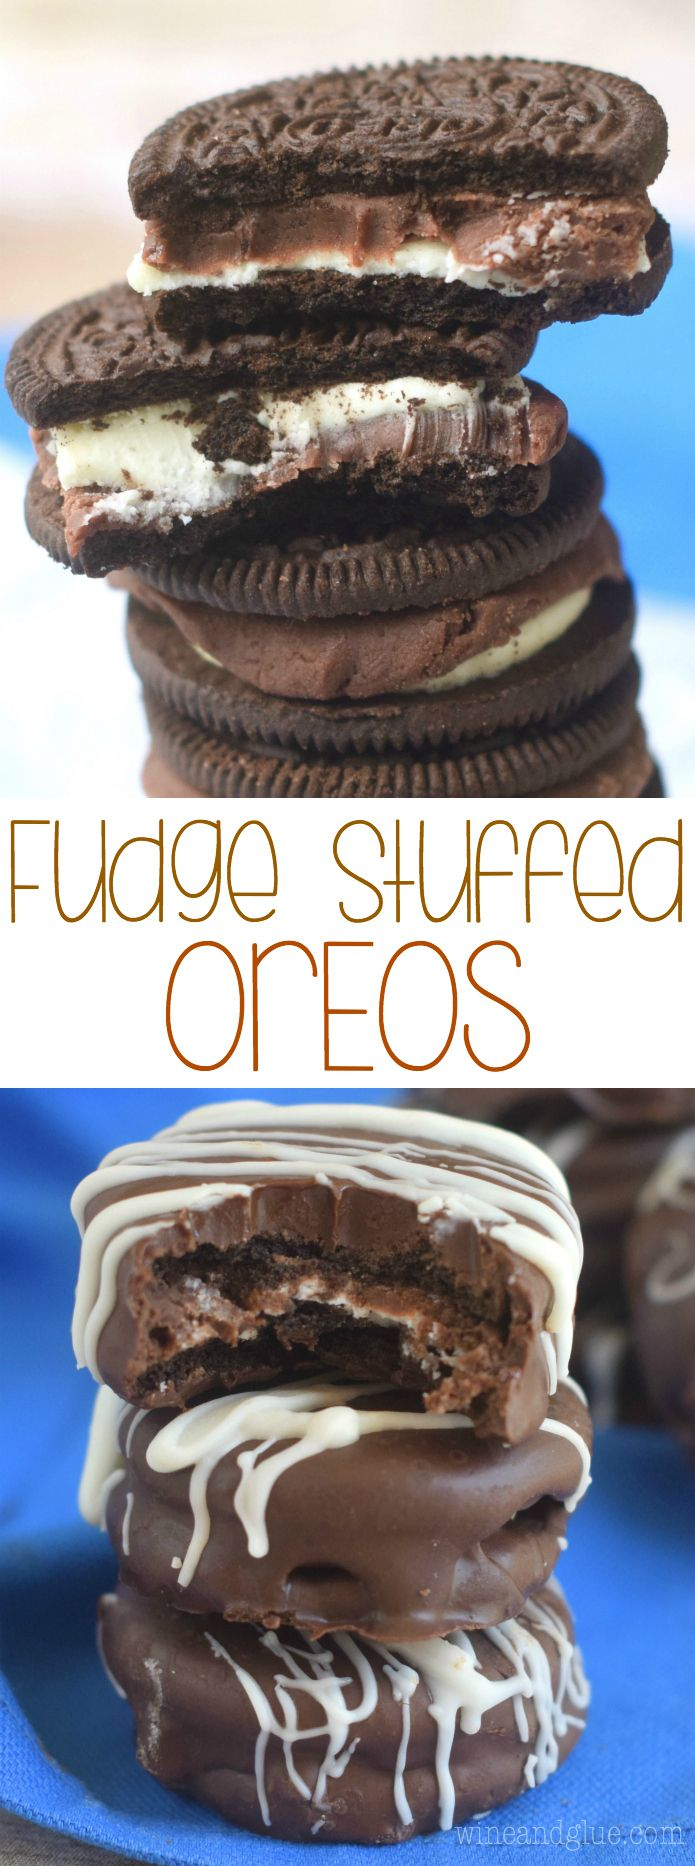 Fudge Stuffed Oreos! These amazingly delicious little cookies are so crazy good you won't ever want to eat Oreos without that layer of fudge!